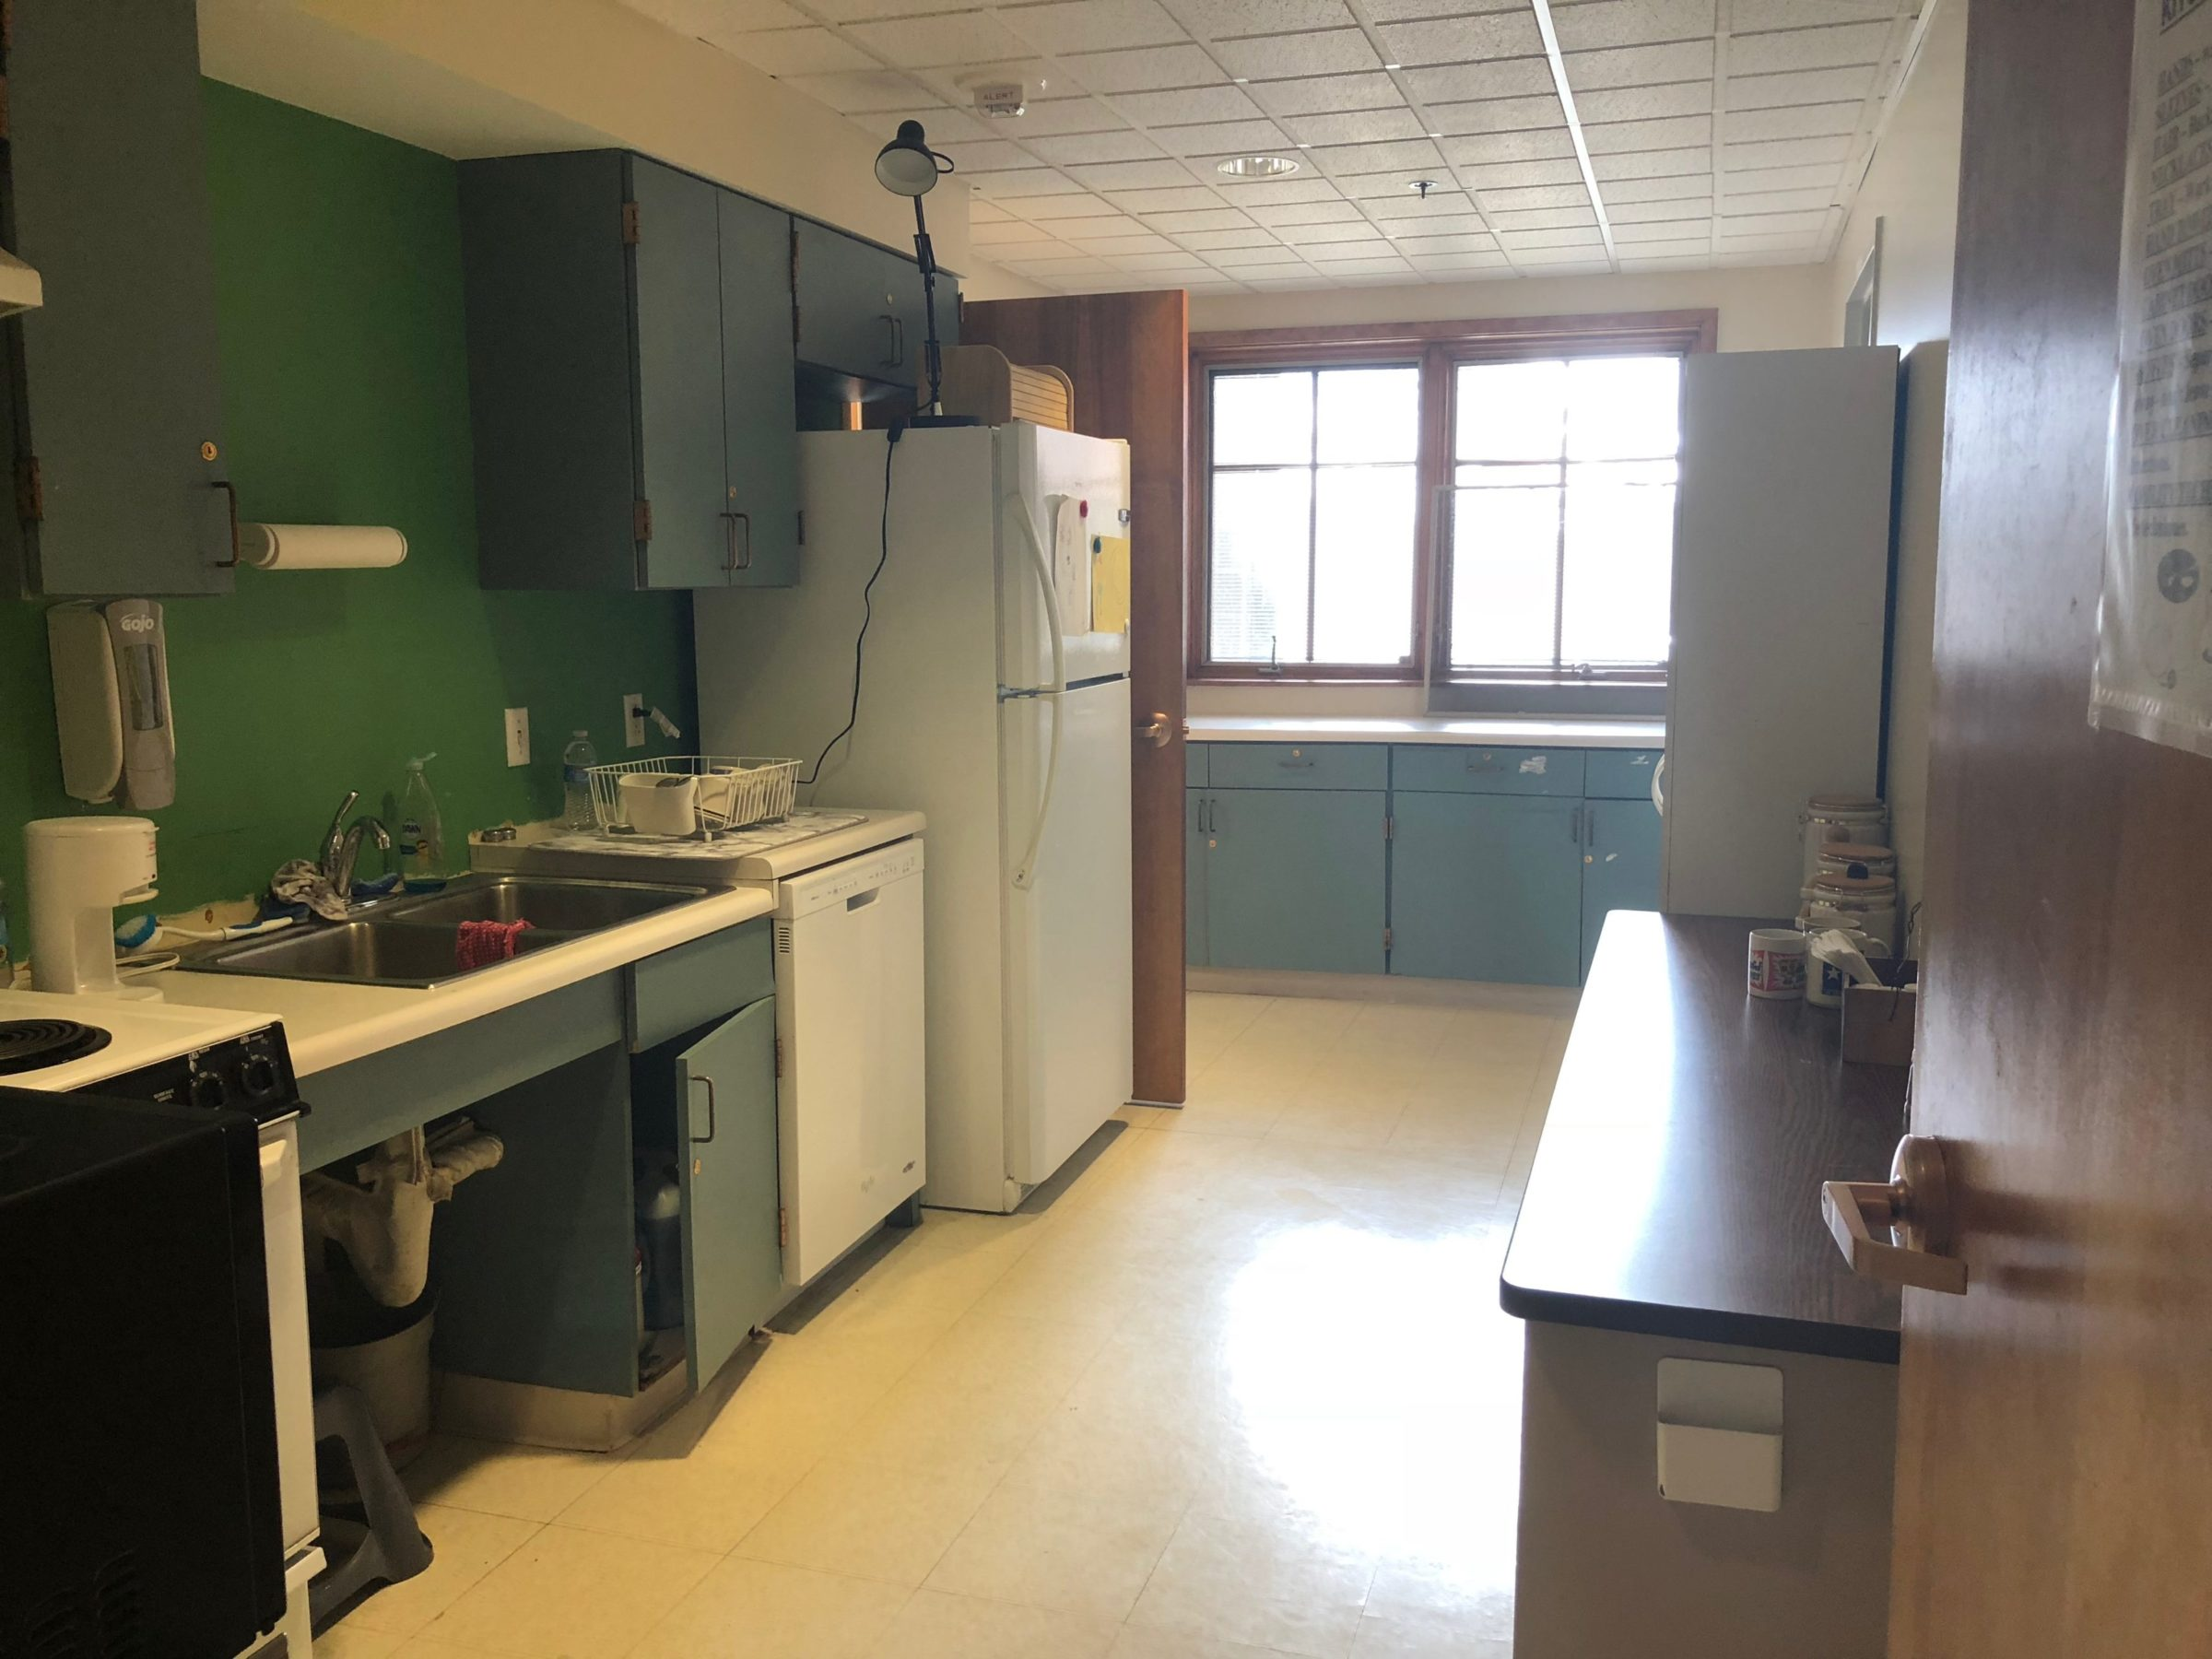 Stove, Sink, Cabinet and Fridge on green wall. Window in the background with light shining into space.